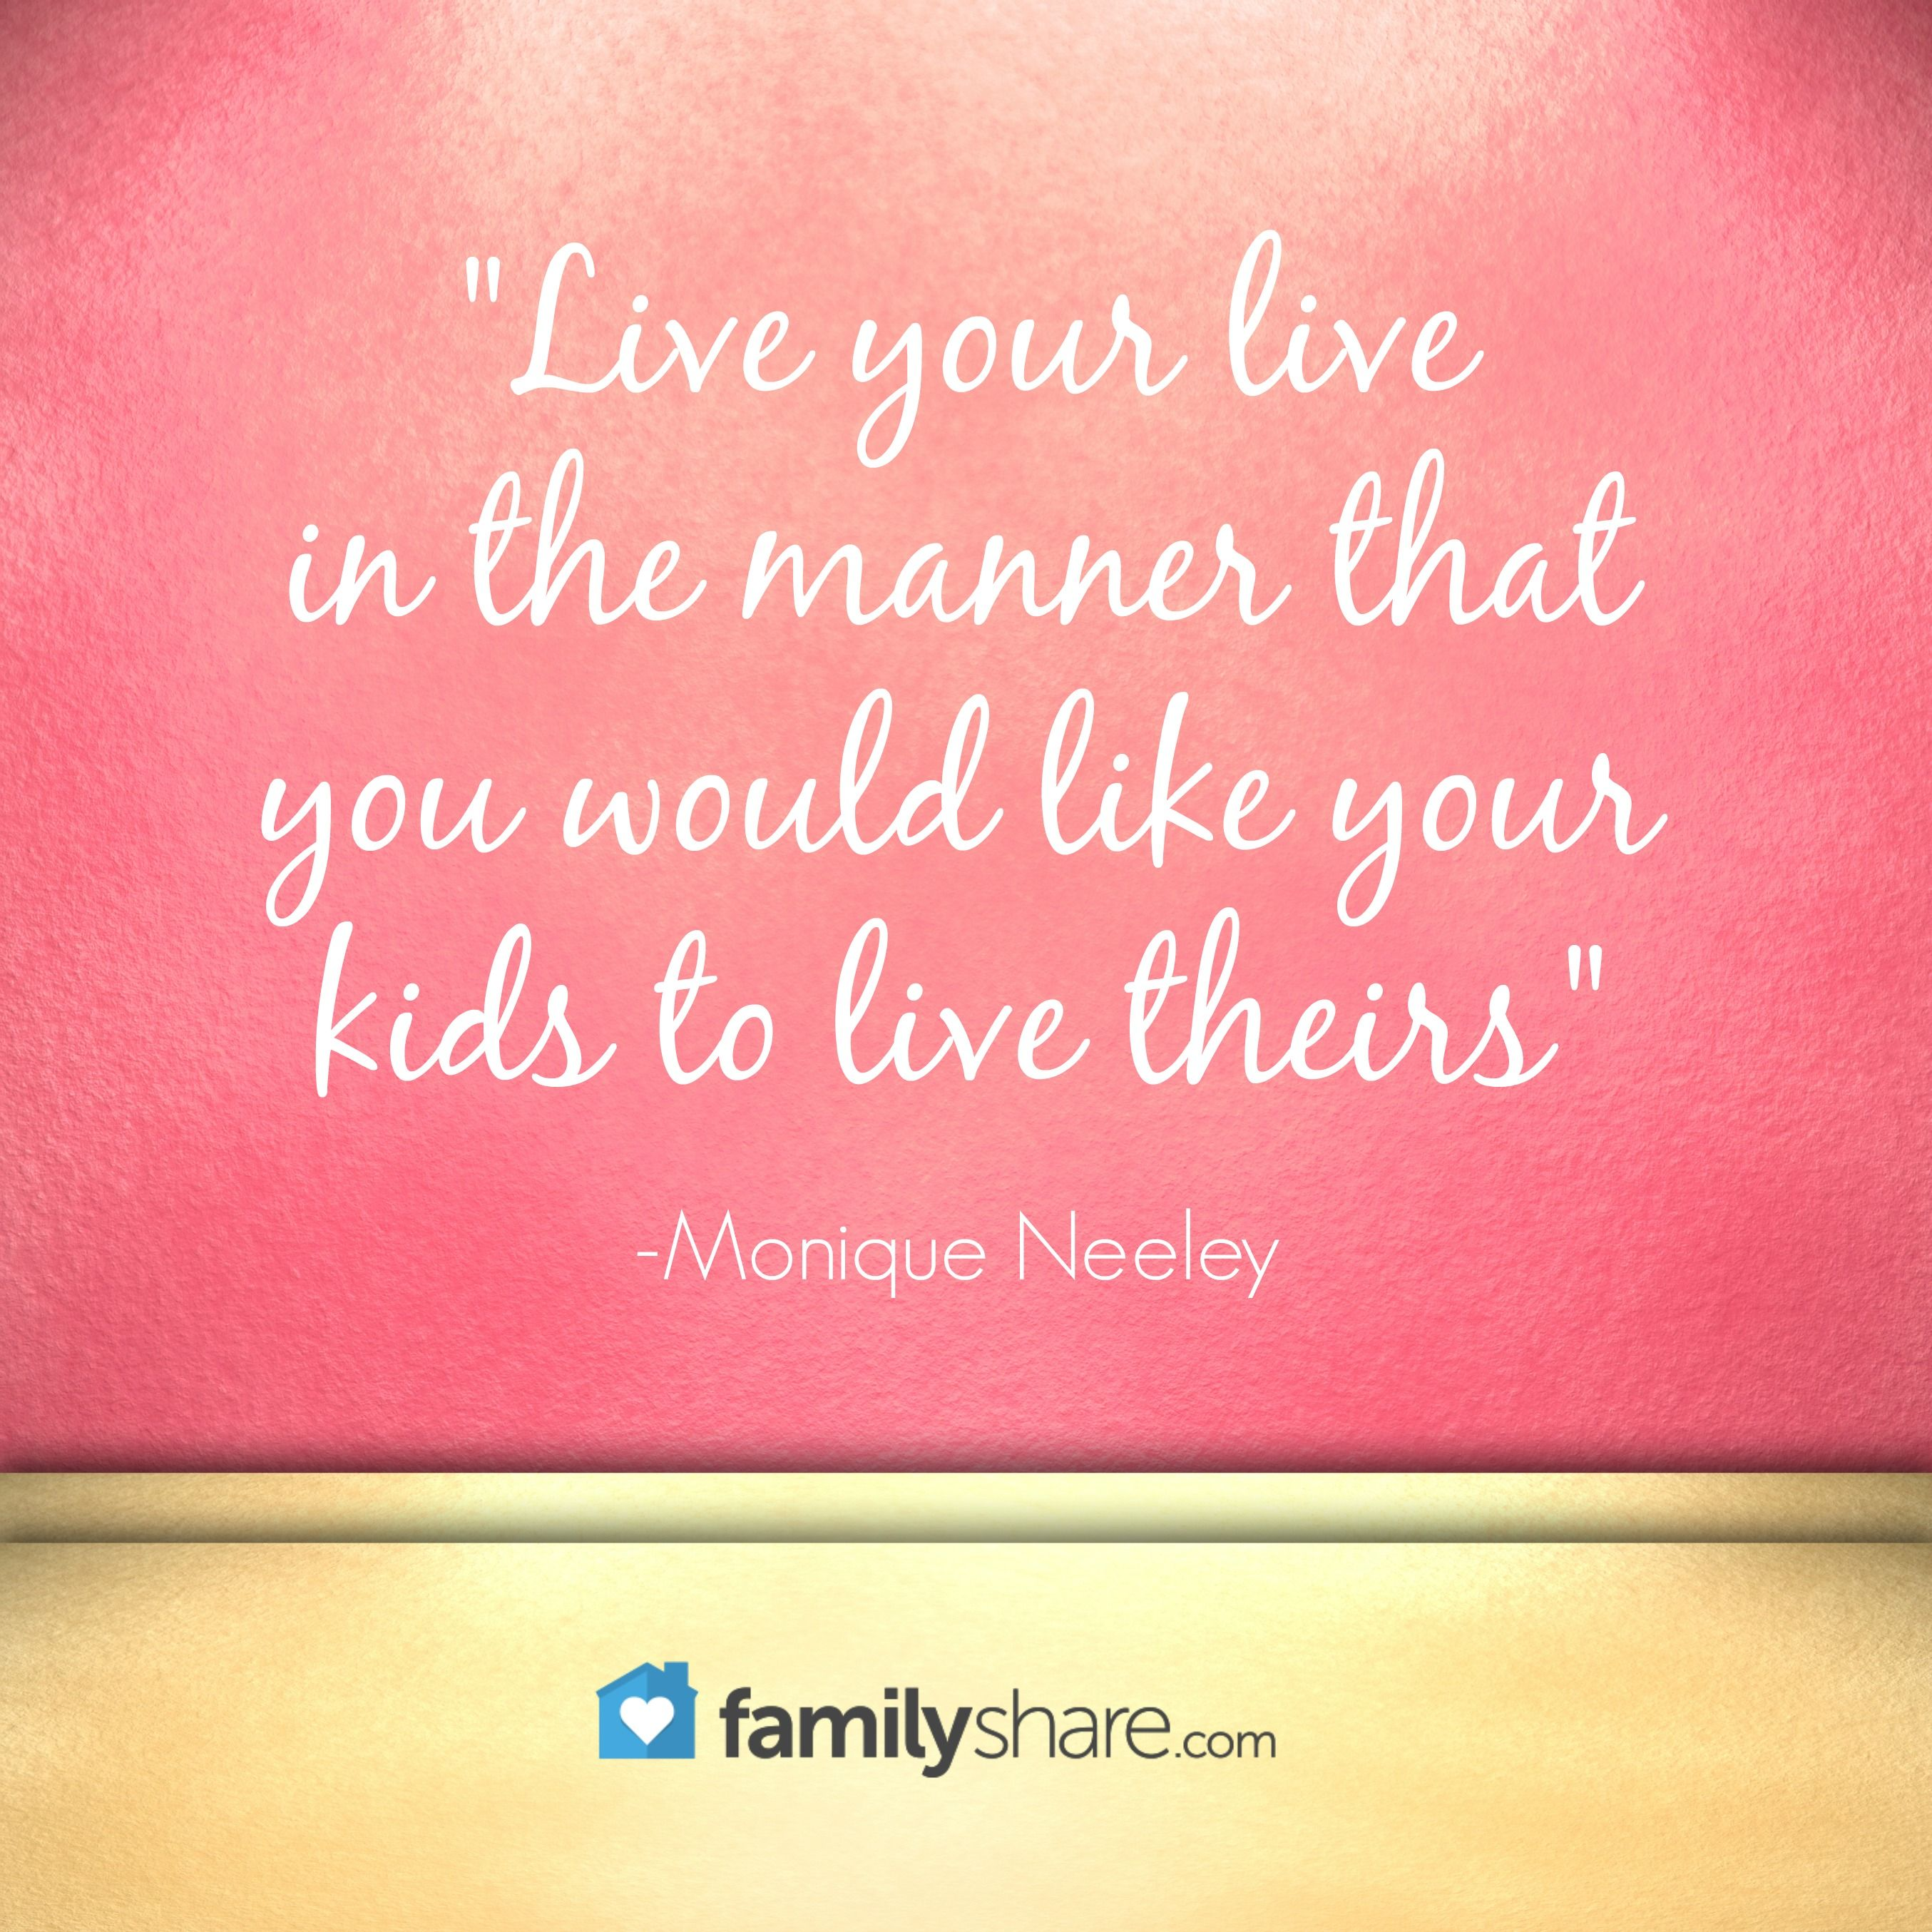 """Live your live in the manner that you would like your kids to live theirs."" -Monique Neeley"